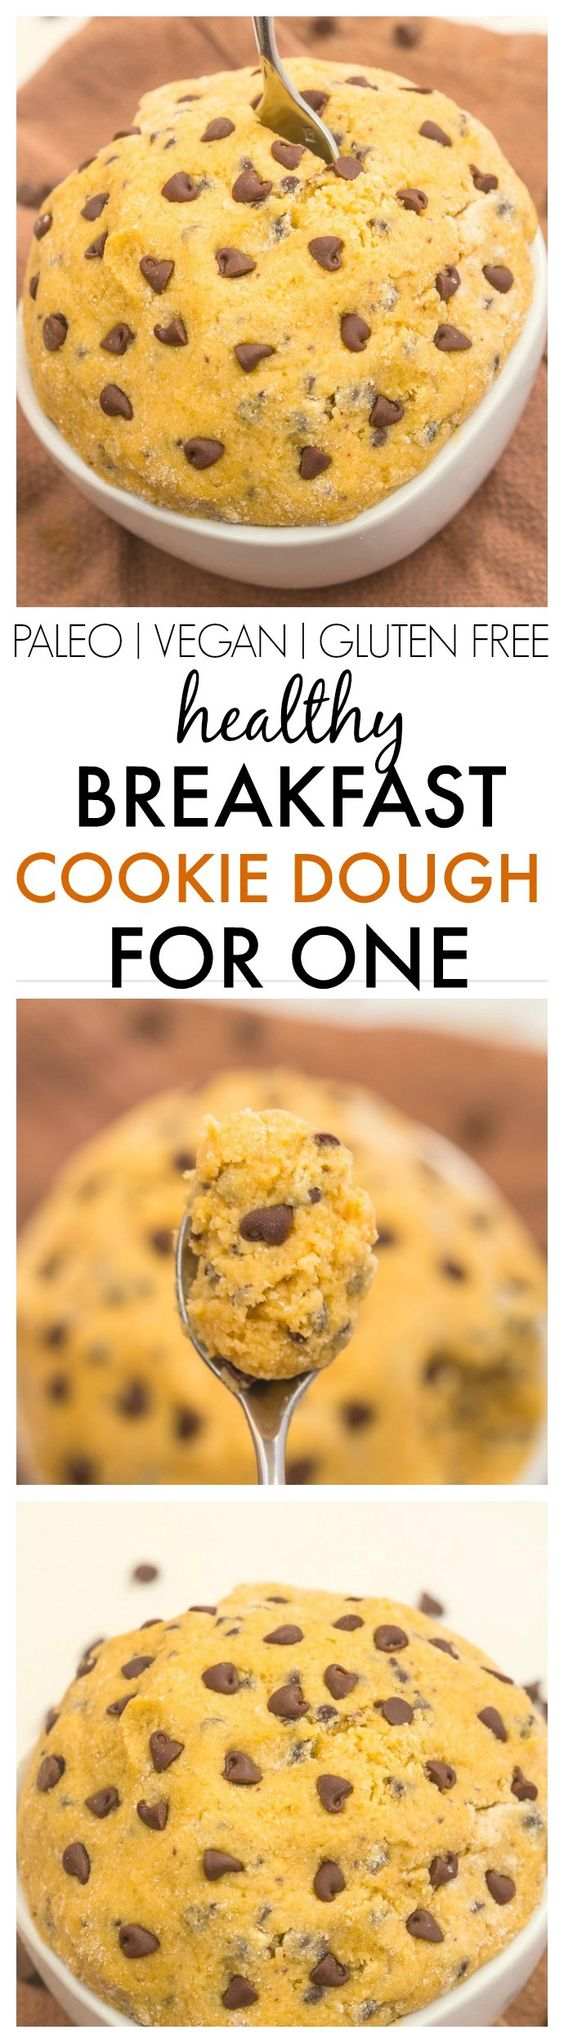 Healthy cookie dough breakfast idea - for when I crave something a little sweeter for breakfast.